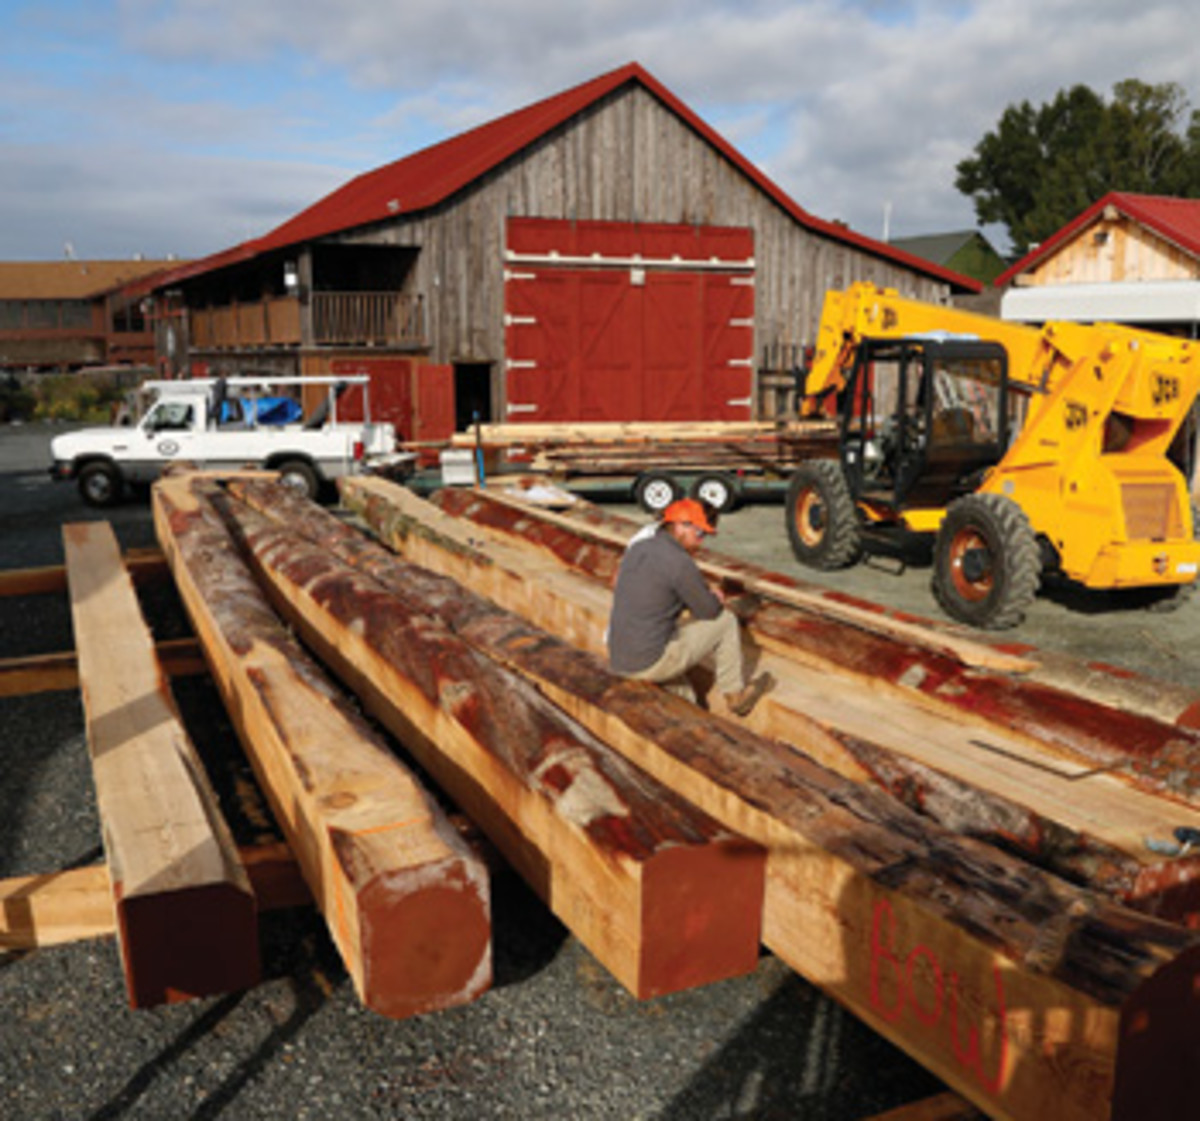 It took Chesapeake Bay Maritime Museum two years to locate the loblolly pine logs for the bugeye's new bottom.